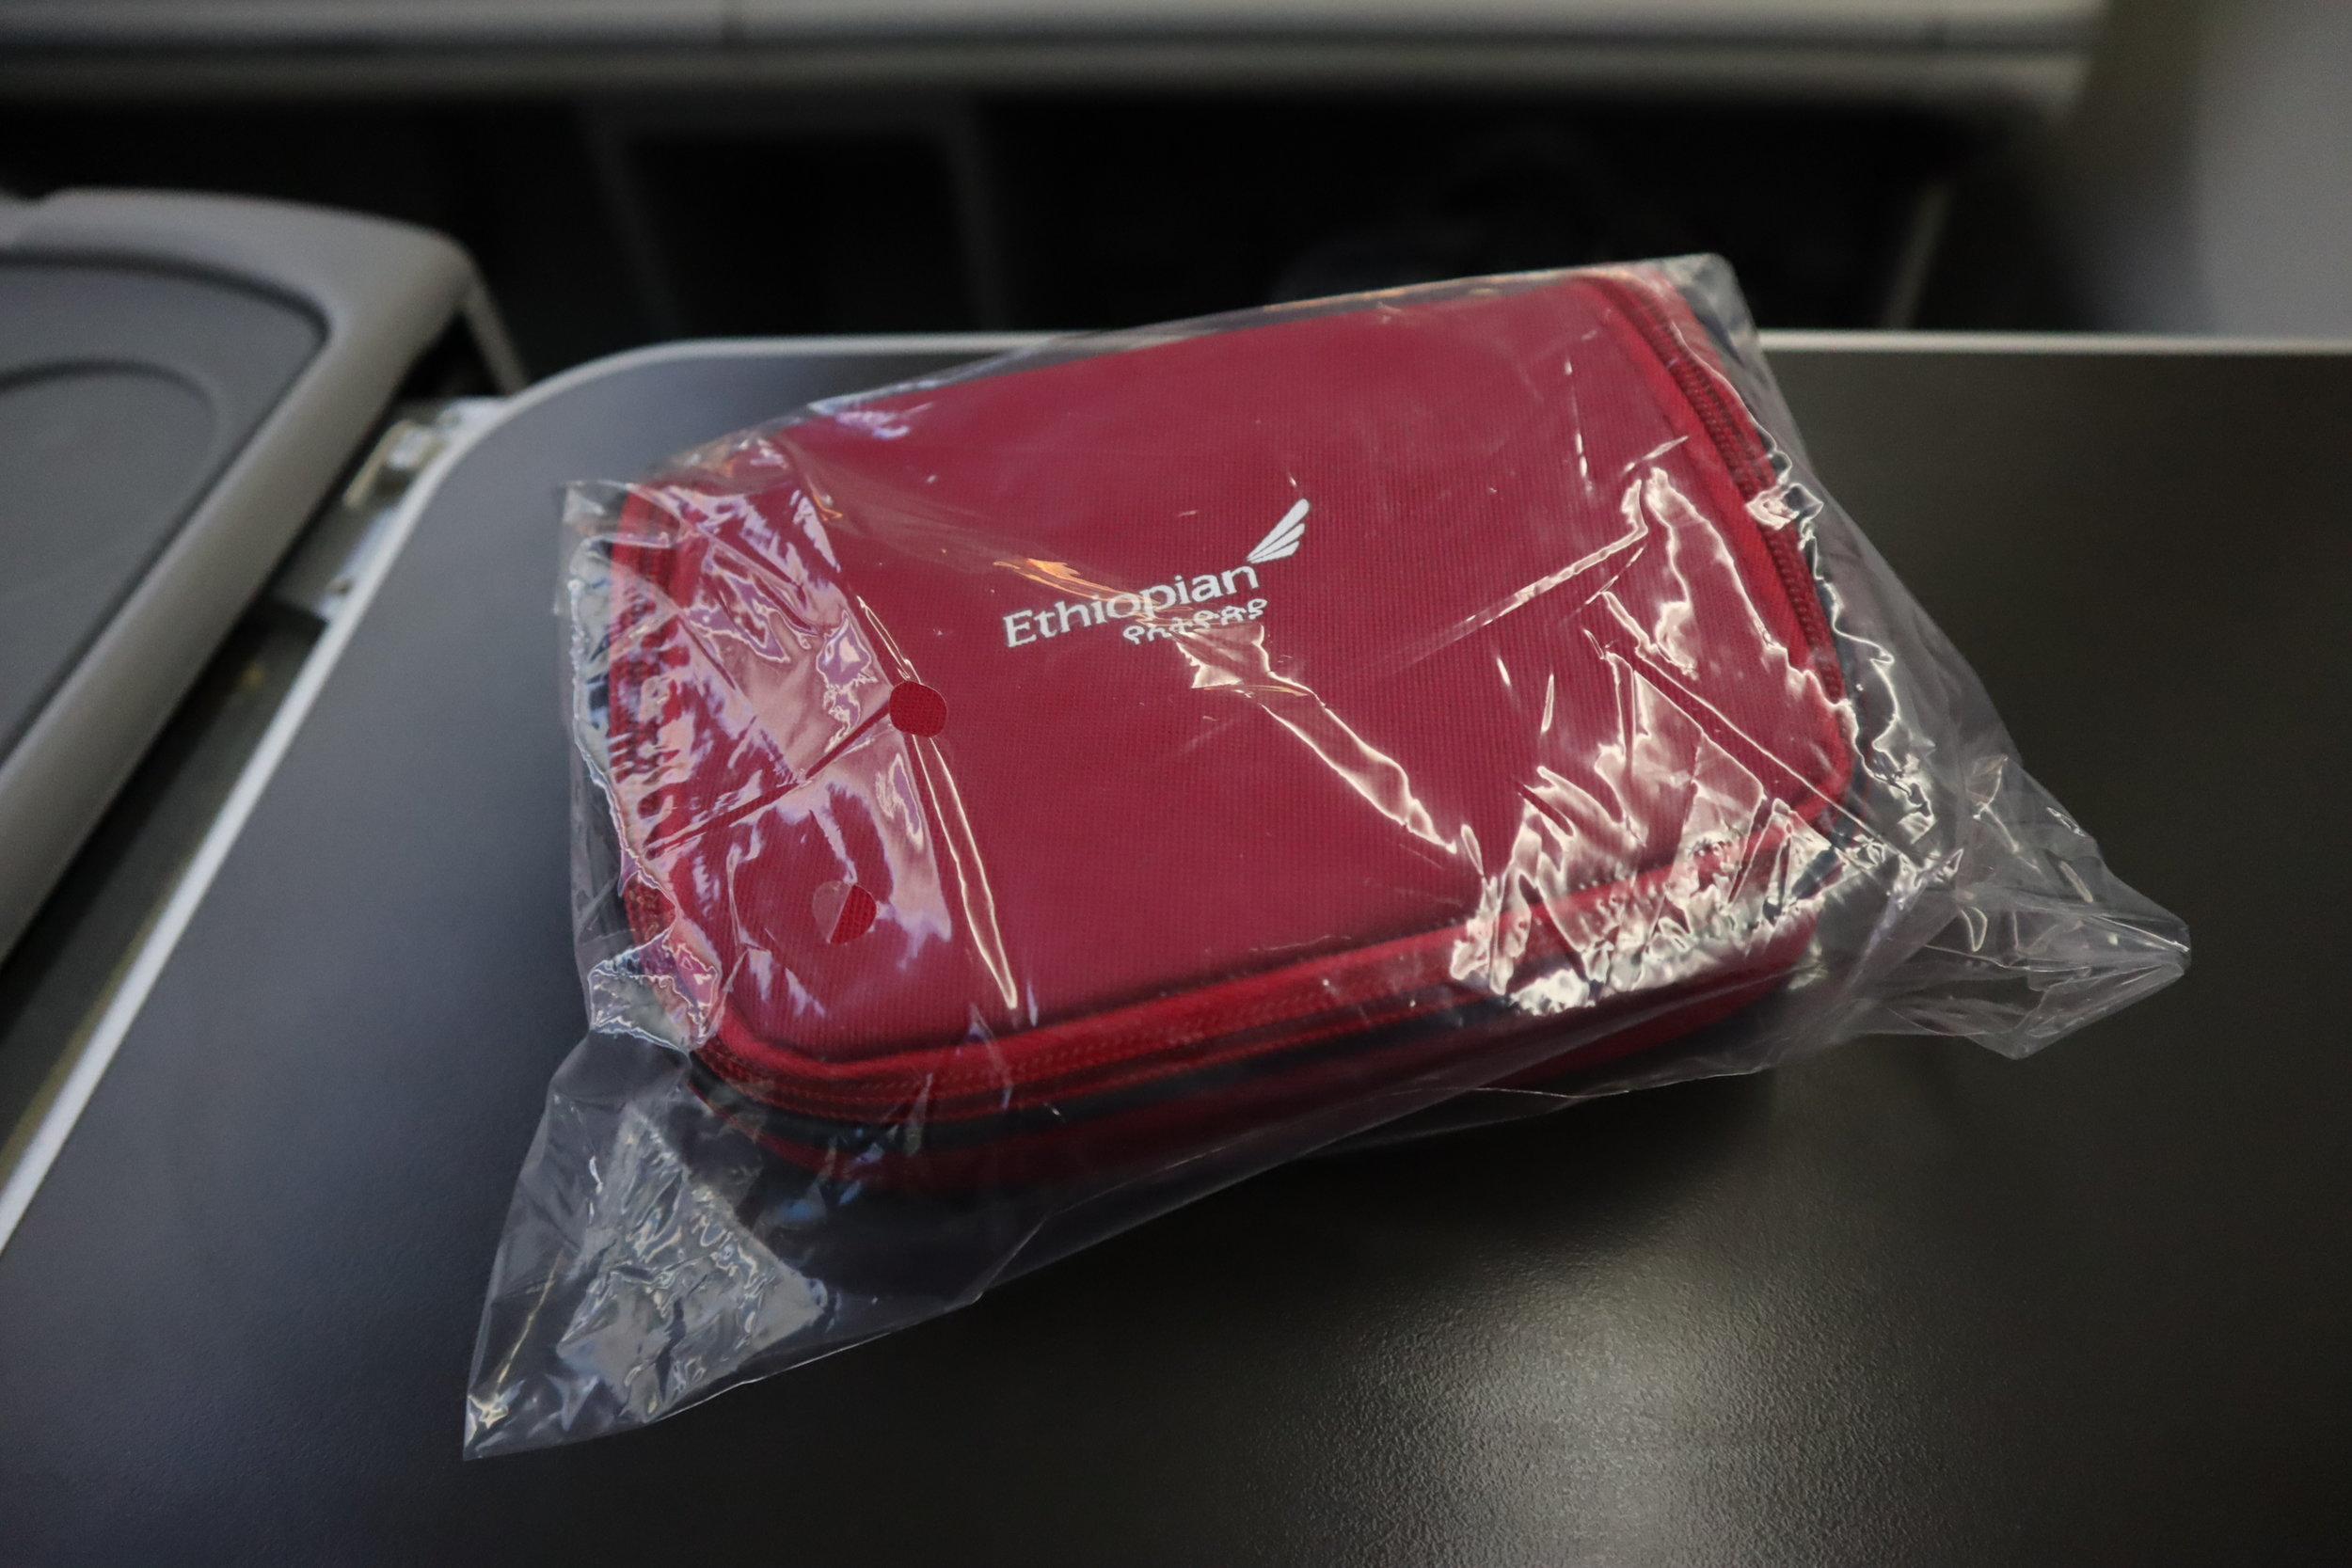 Ethiopian Airlines business class – Amenity kit